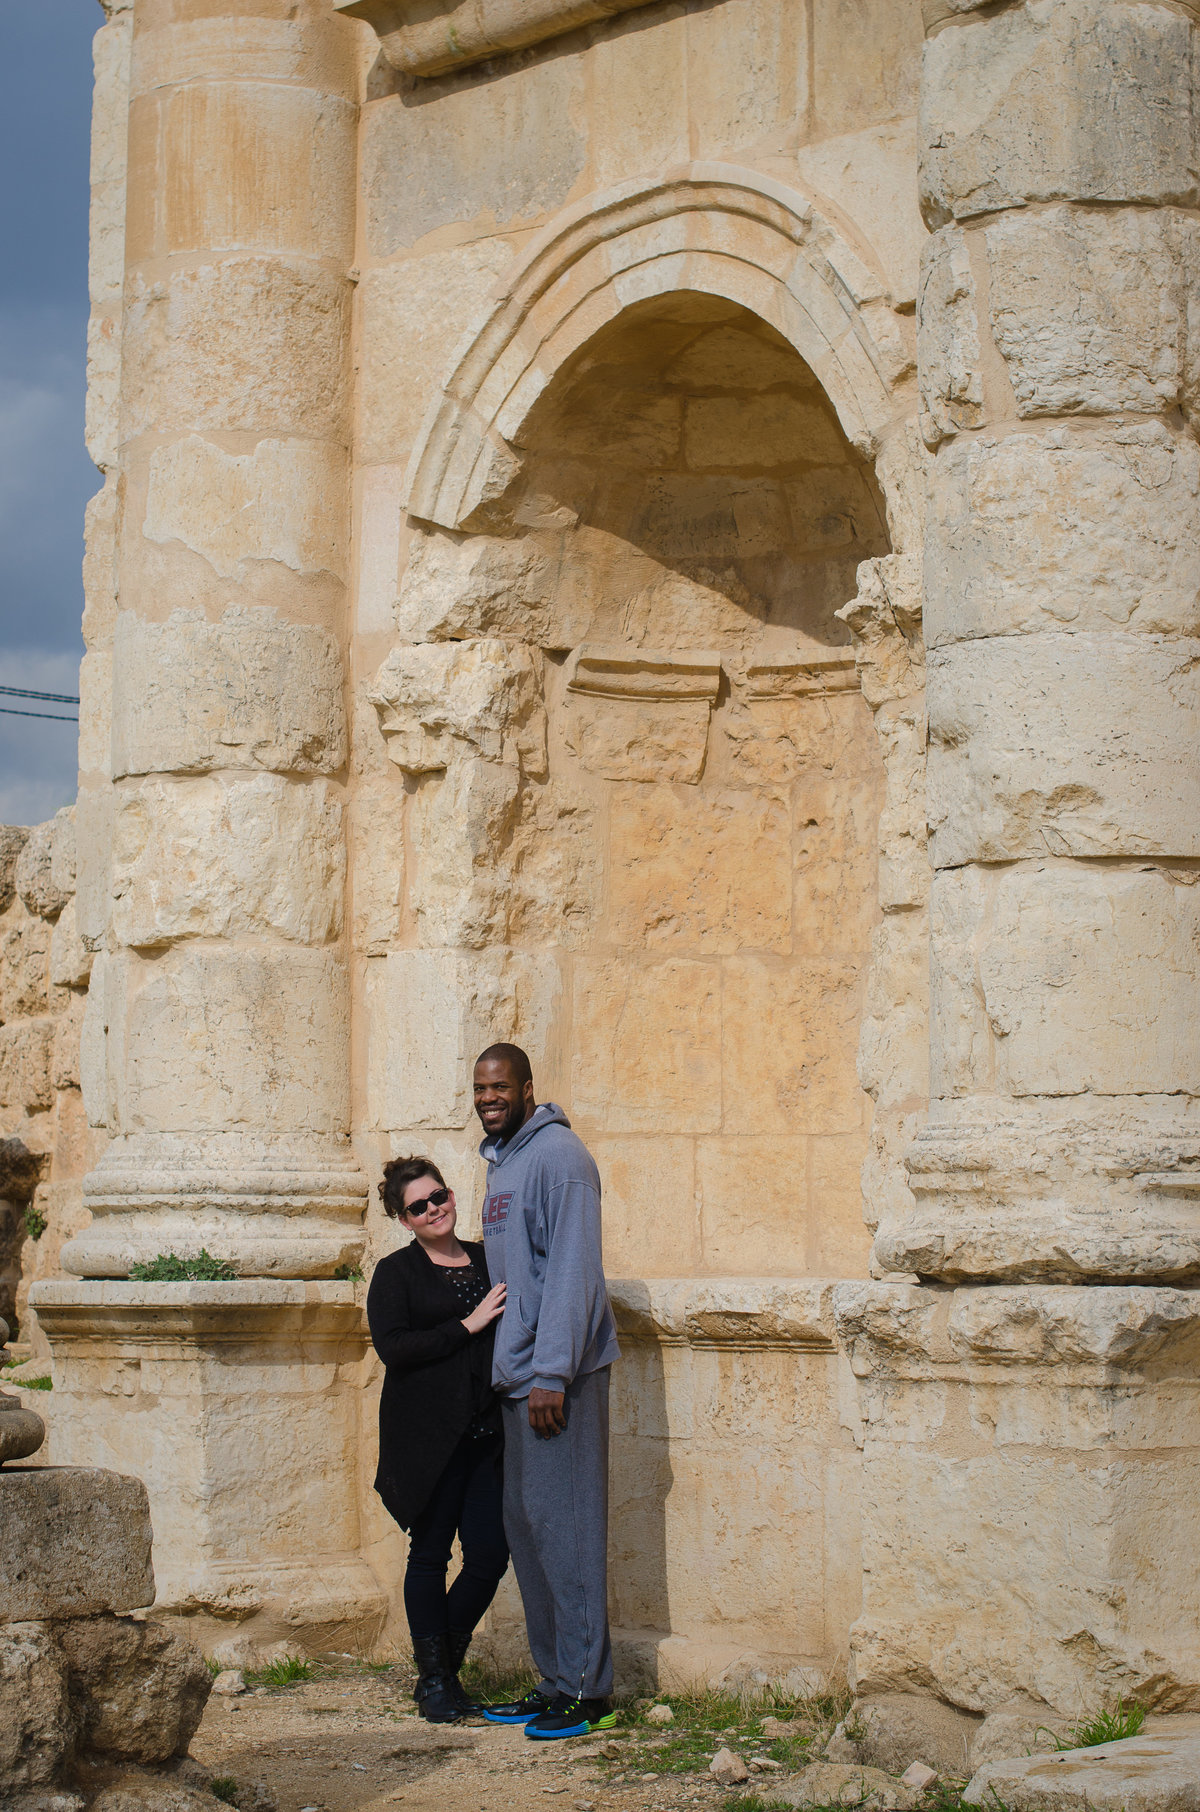 Jill and Desmond Blue standing in an arch at the Roman ruins of Jaresh, Jordan